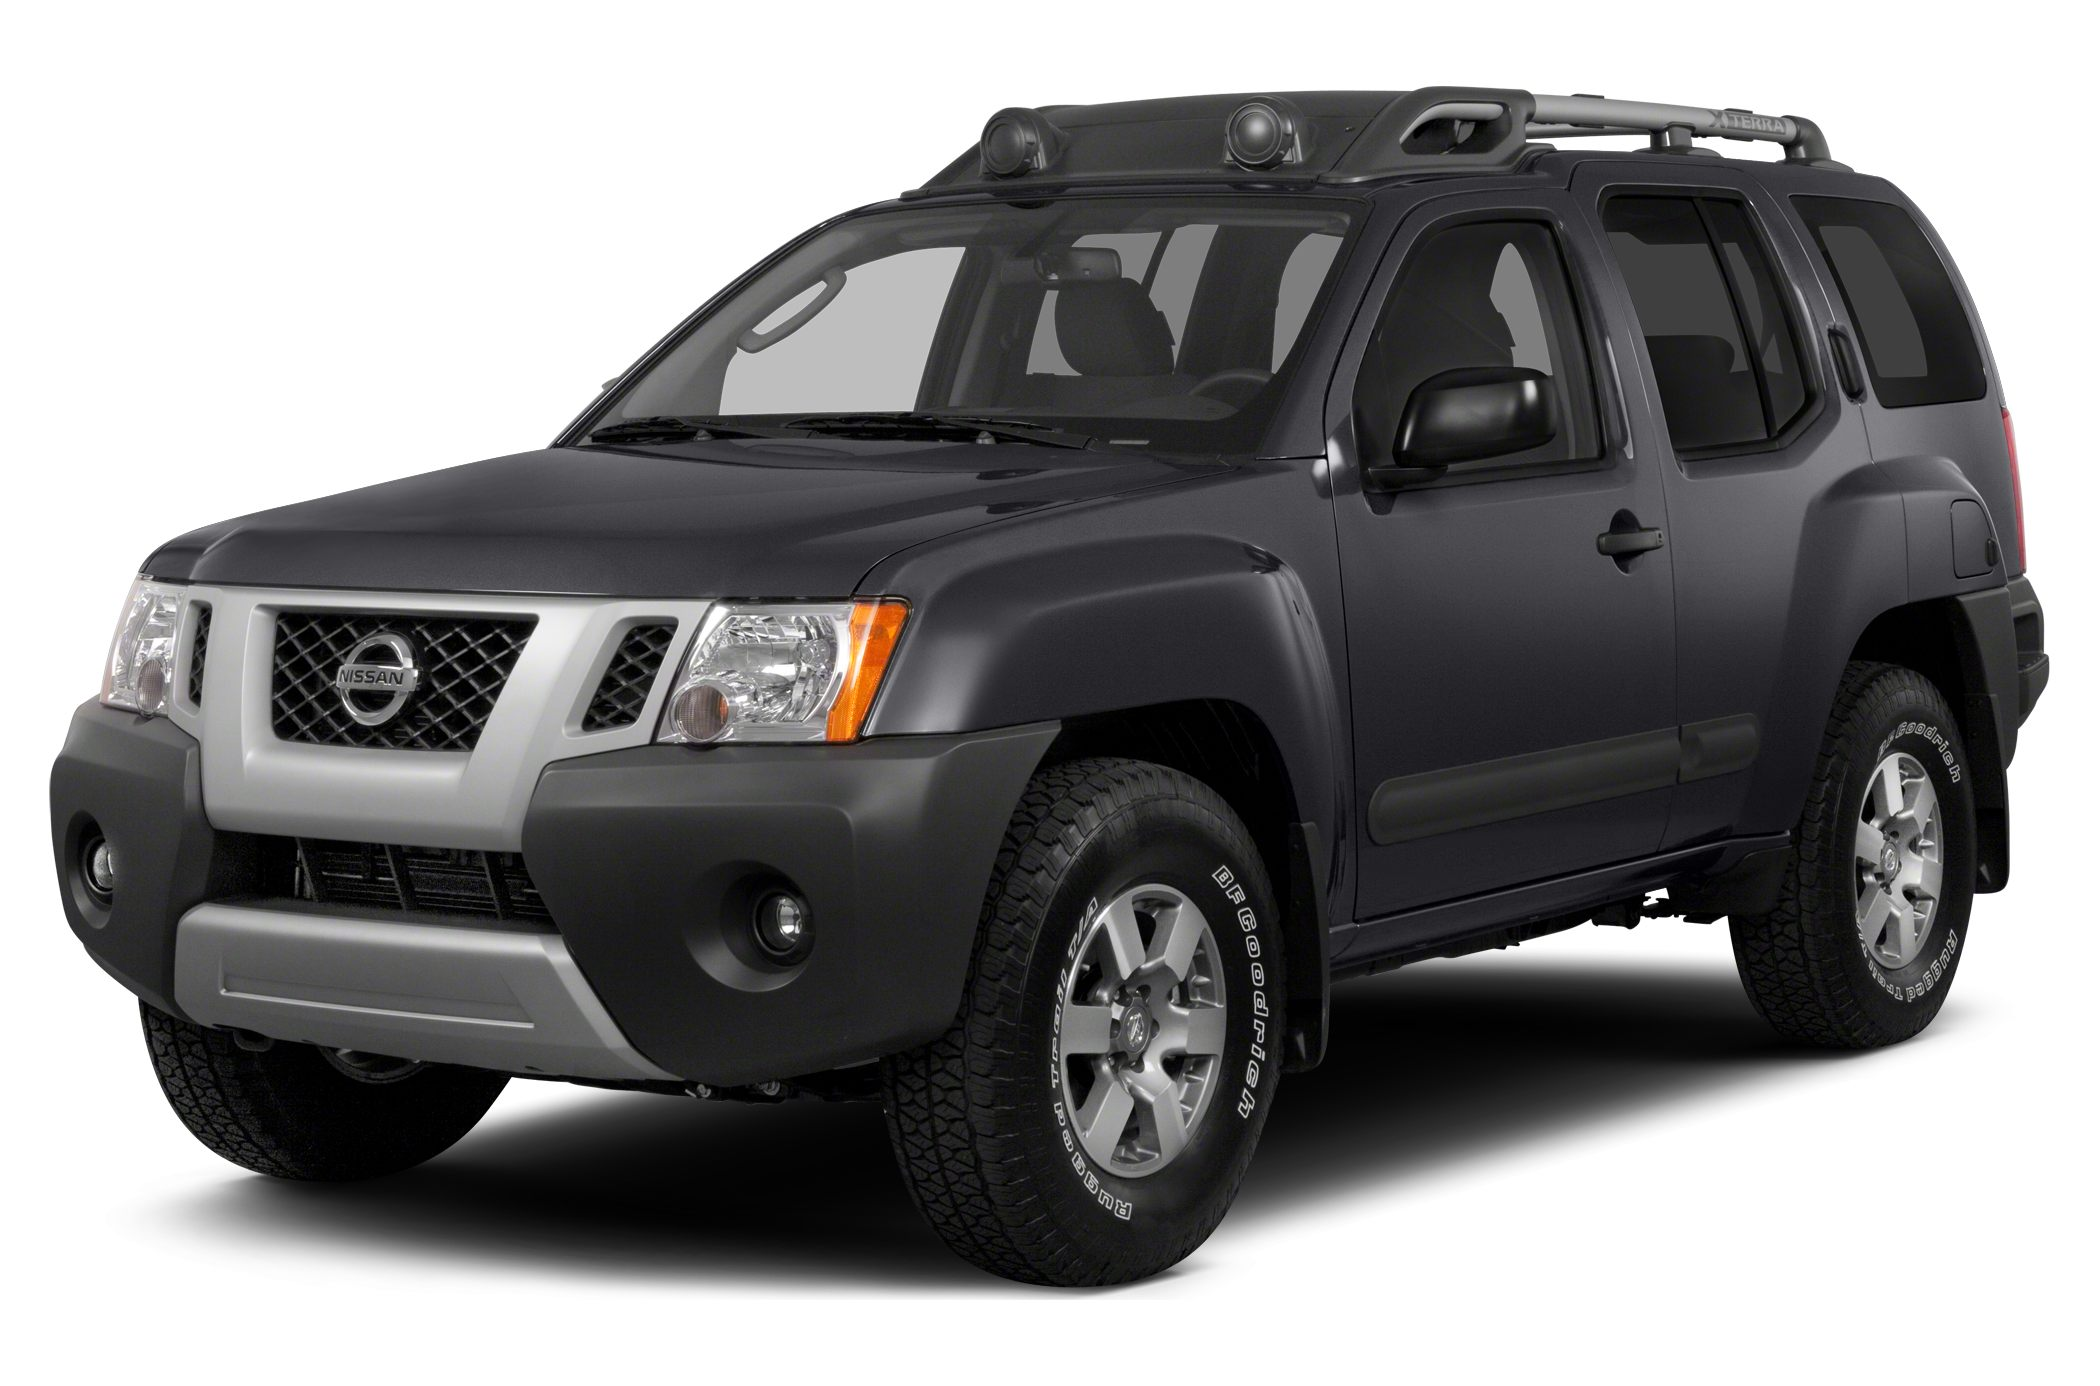 Nissan Xterra Philippines >> Nissan Xterra News, Photos and Buying Information - Autoblog